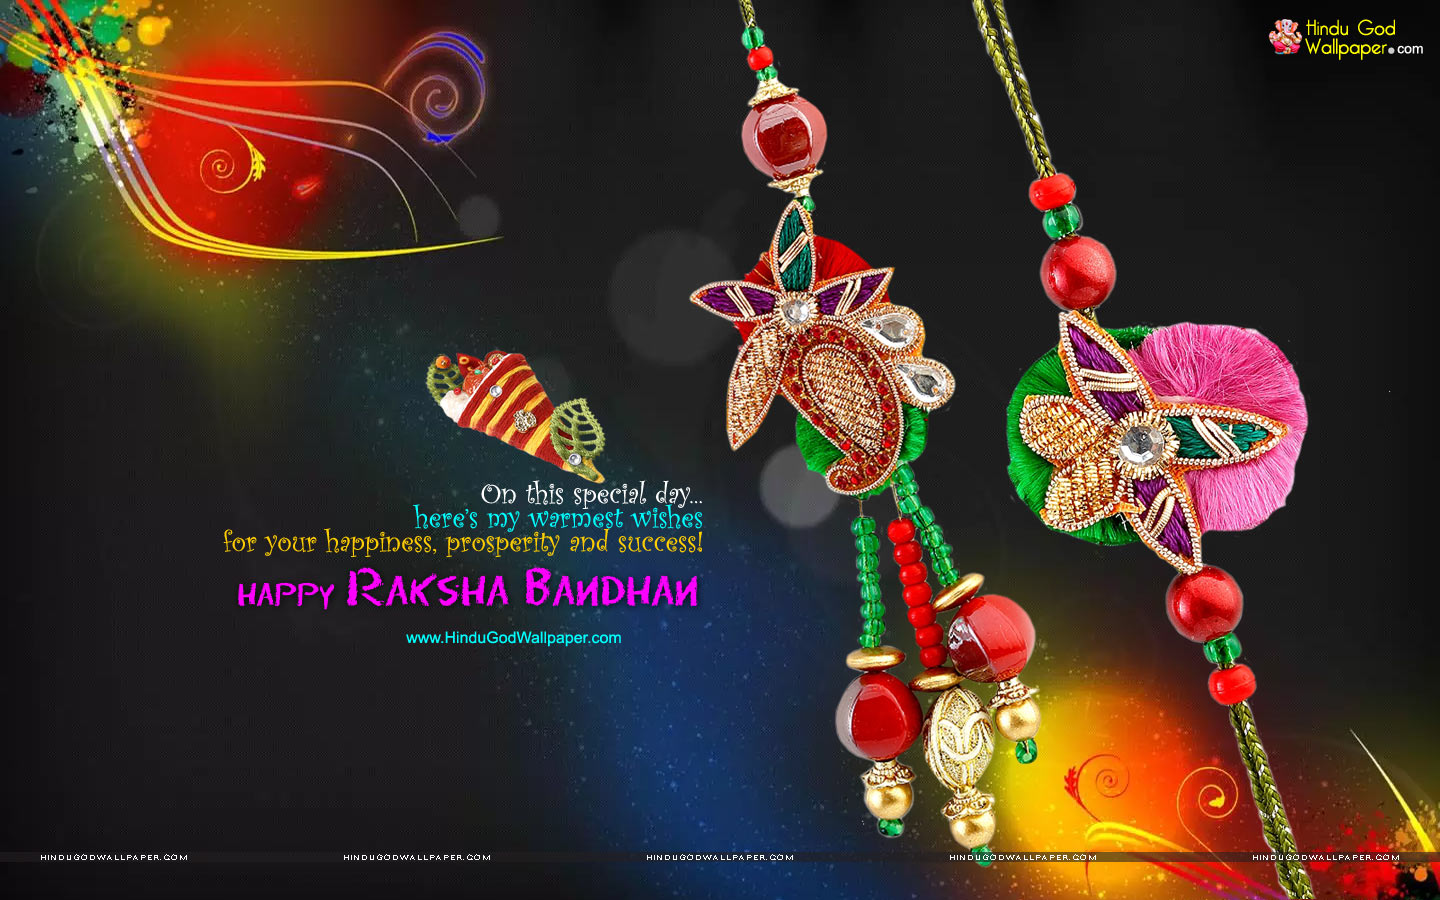 raksha bandhan new wallpaper hd